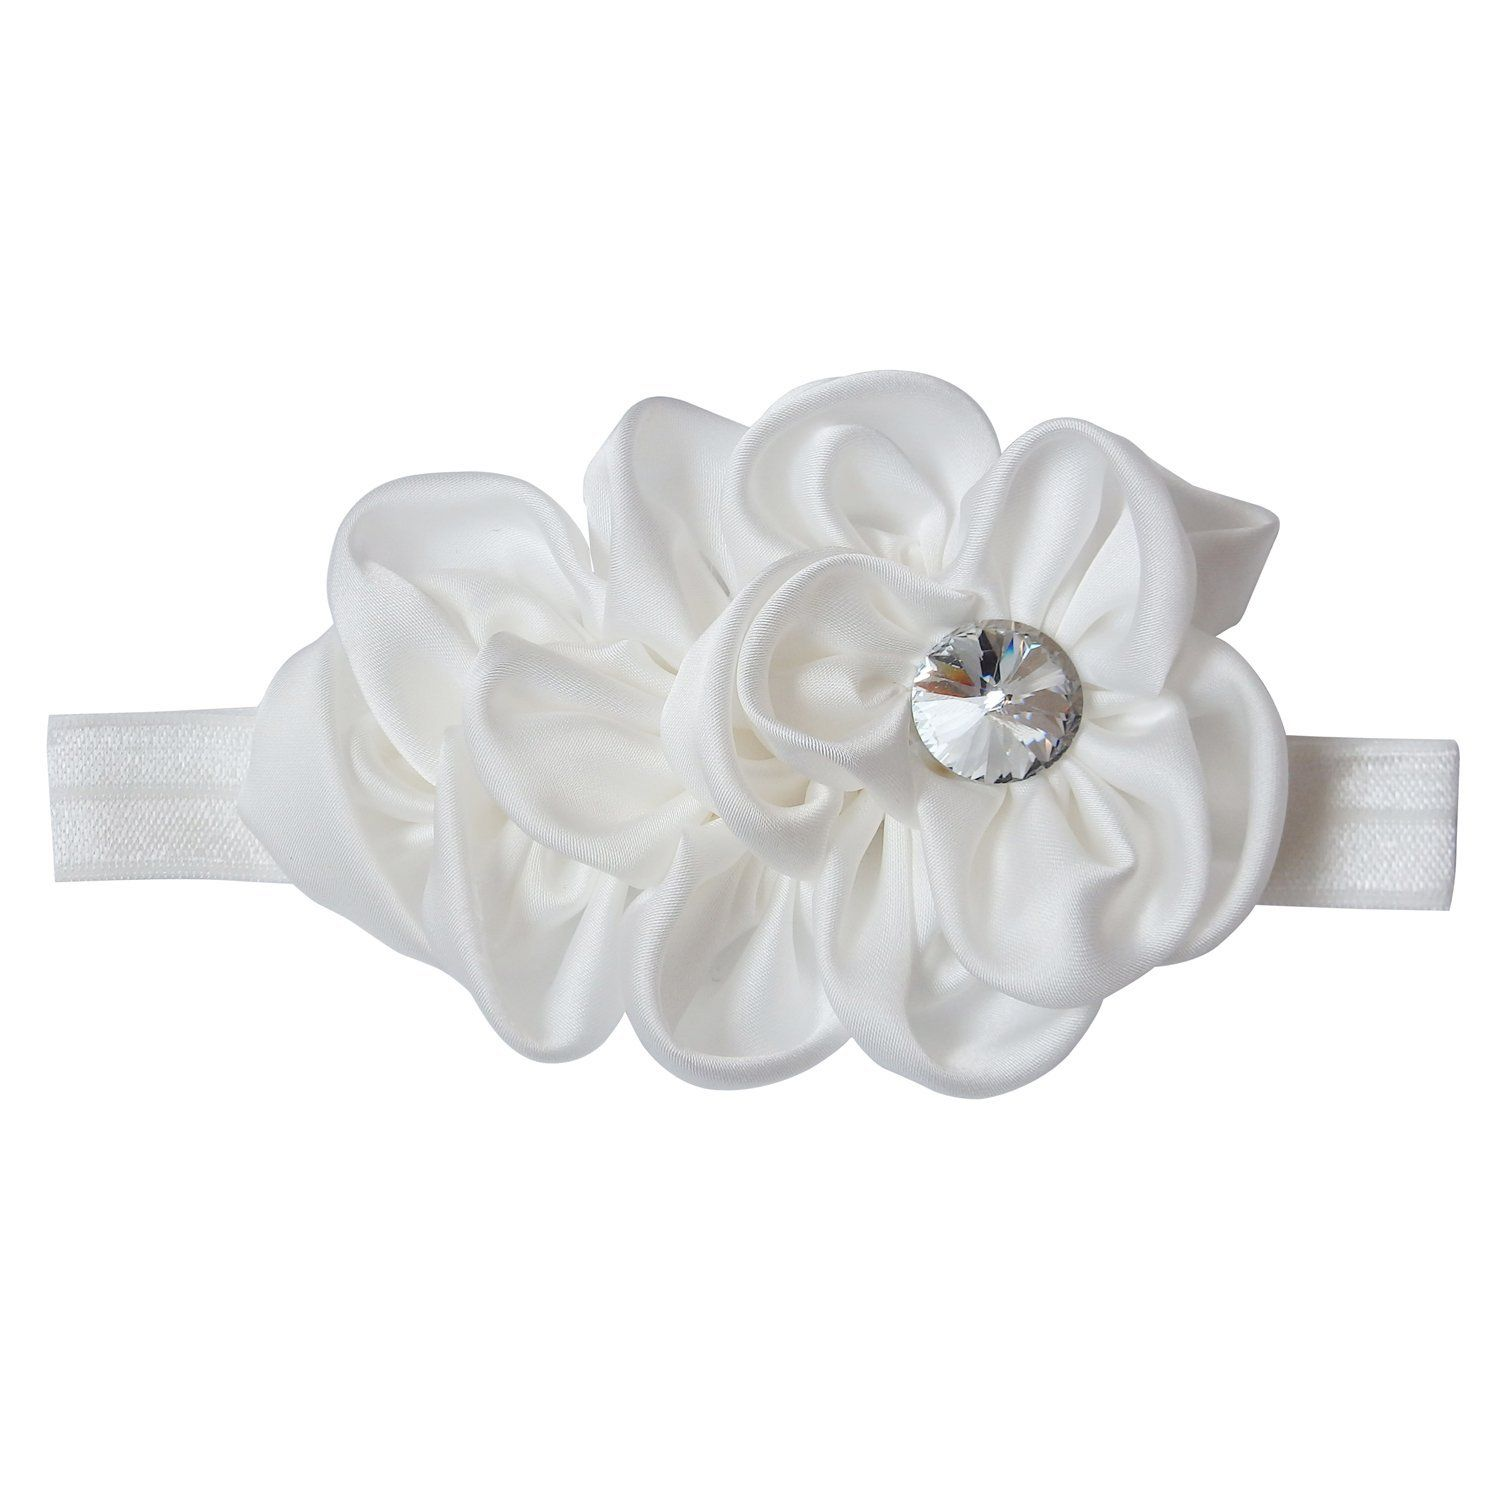 Rarelove Baby Girls Headband White Ribbon Flower With Rhinestone